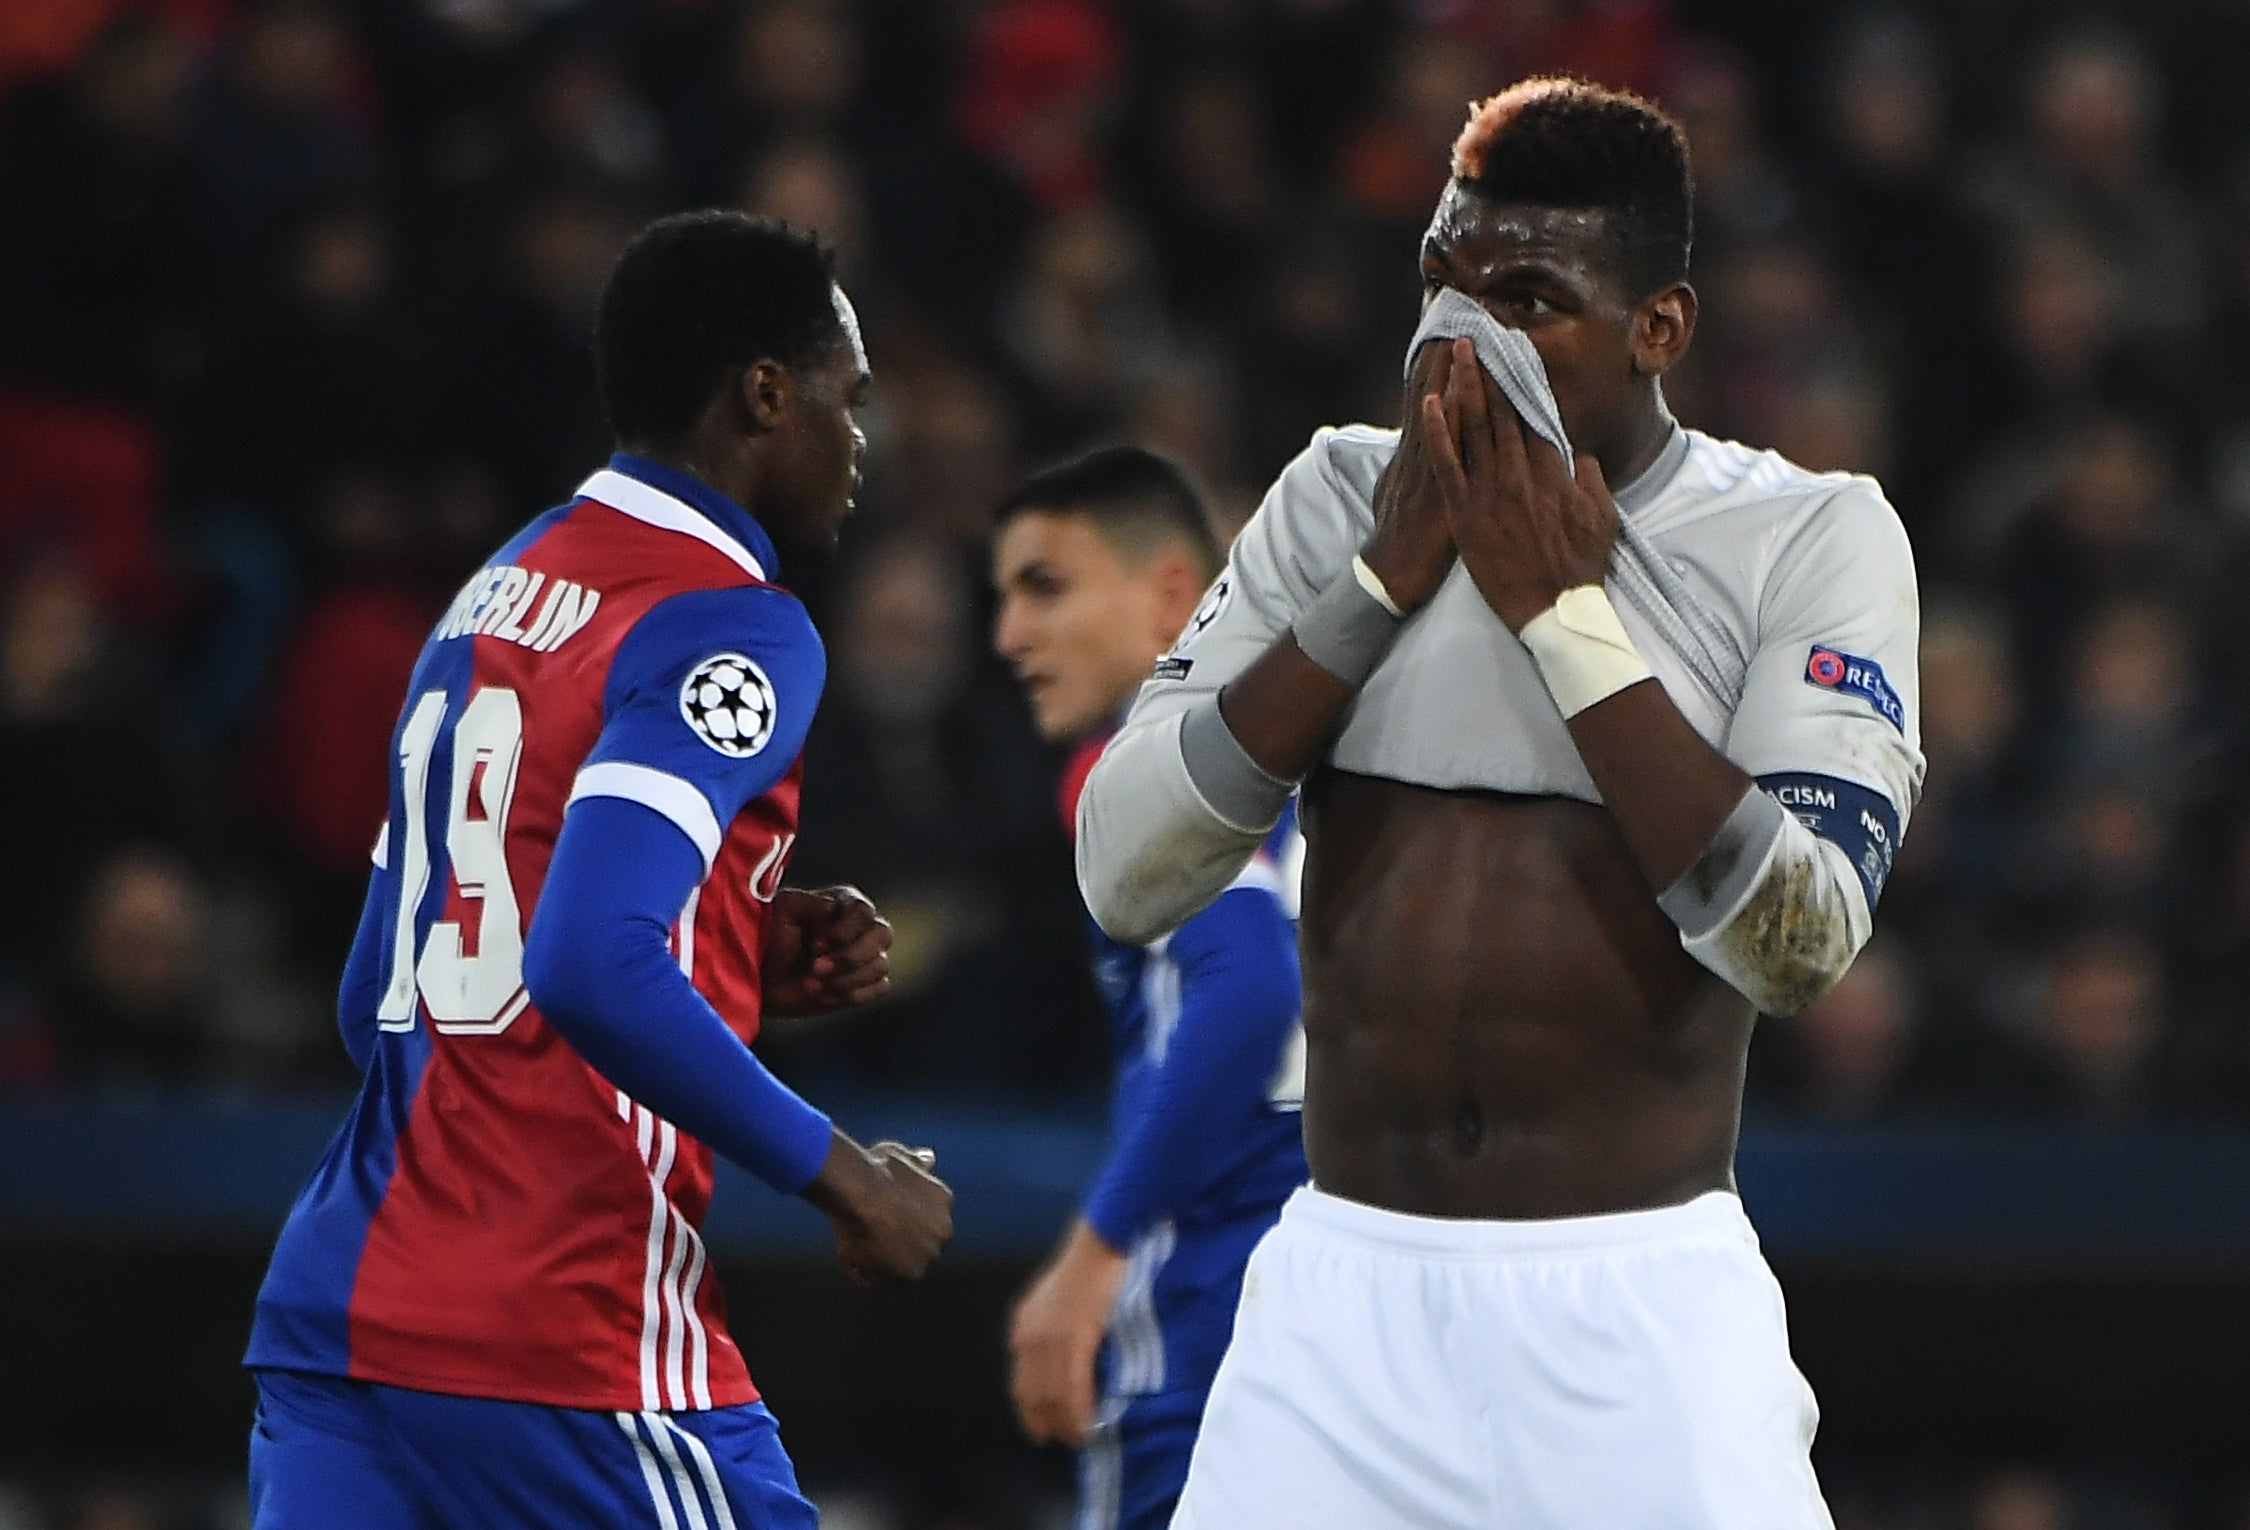 Jose Mourinho says Manchester United should have scored five first-half goals after defeat in Basel